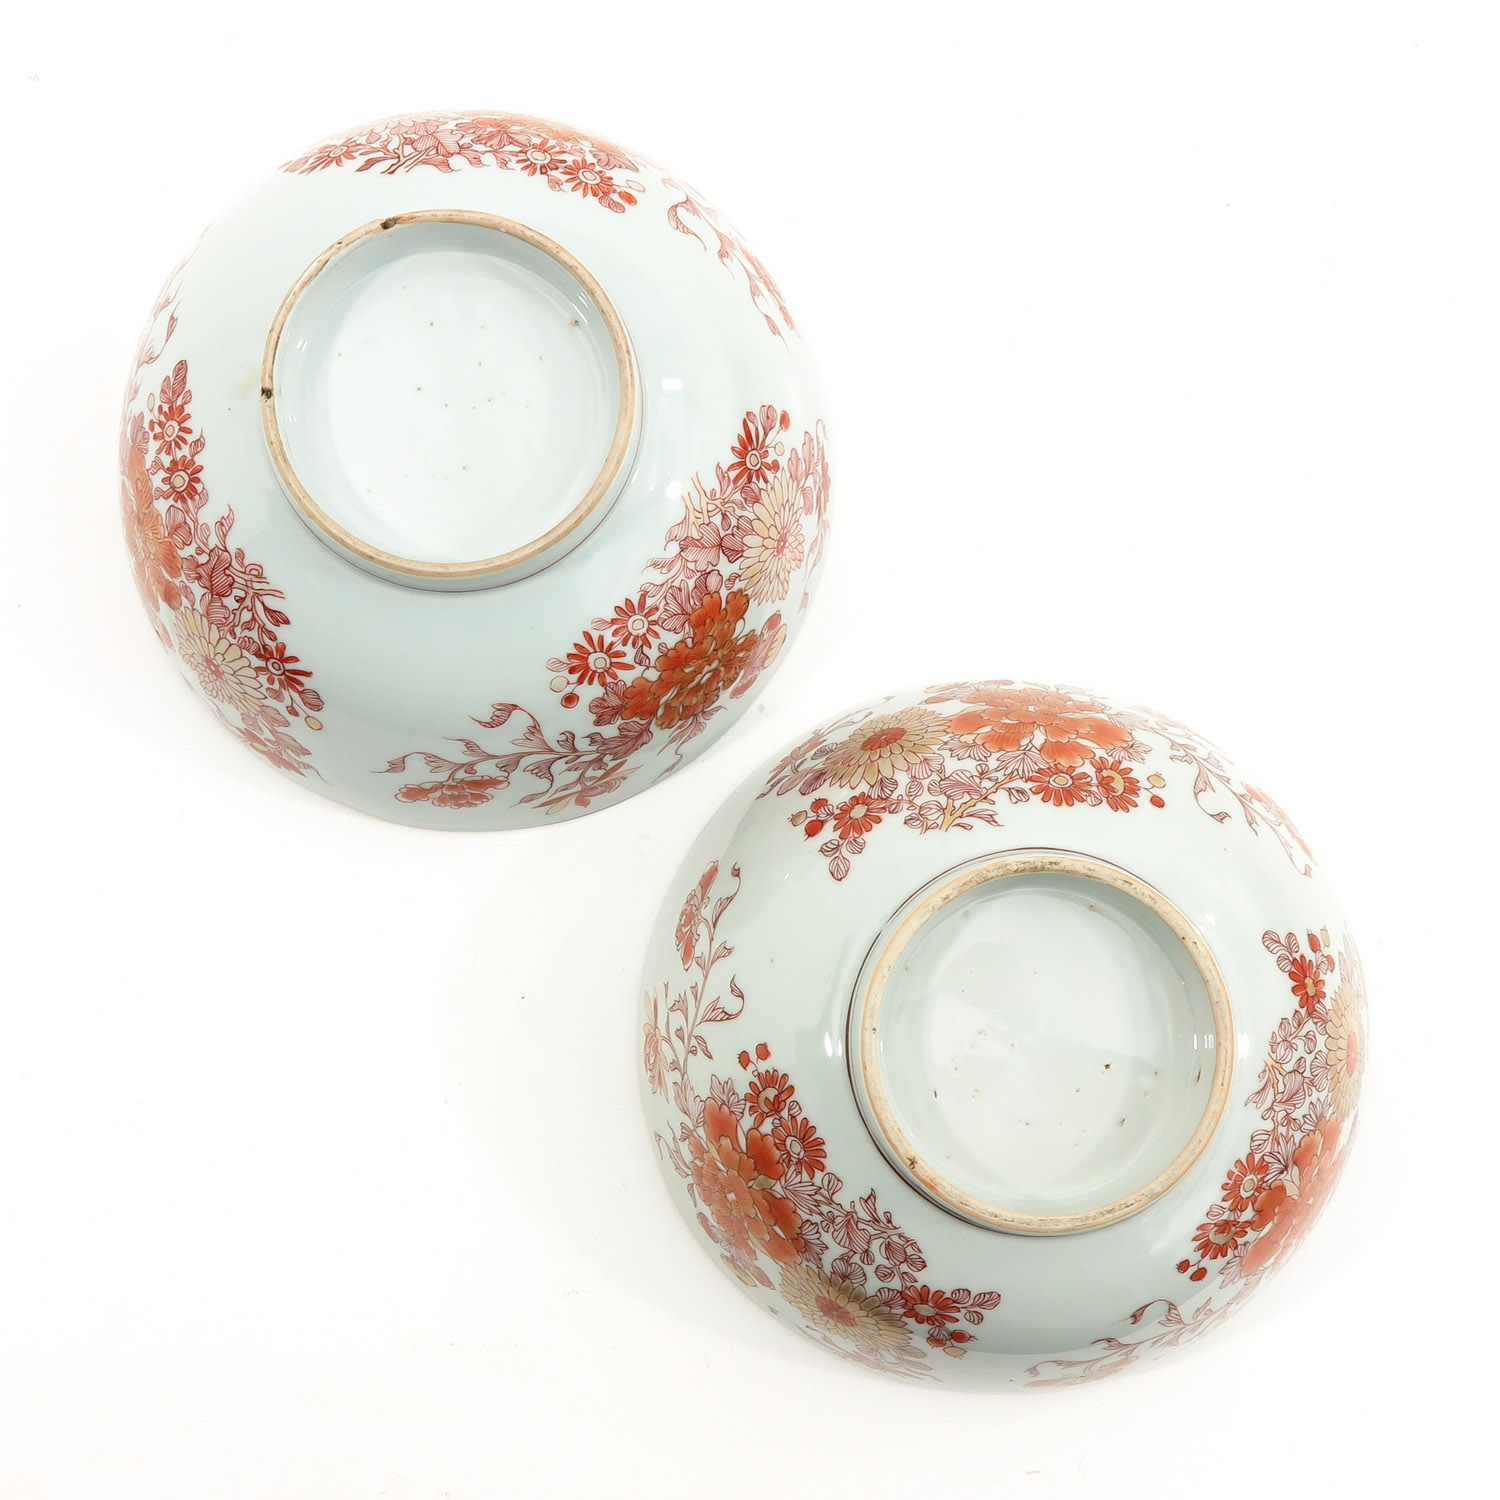 A Pair of Milk and Blood Decor Bowls - Image 6 of 9